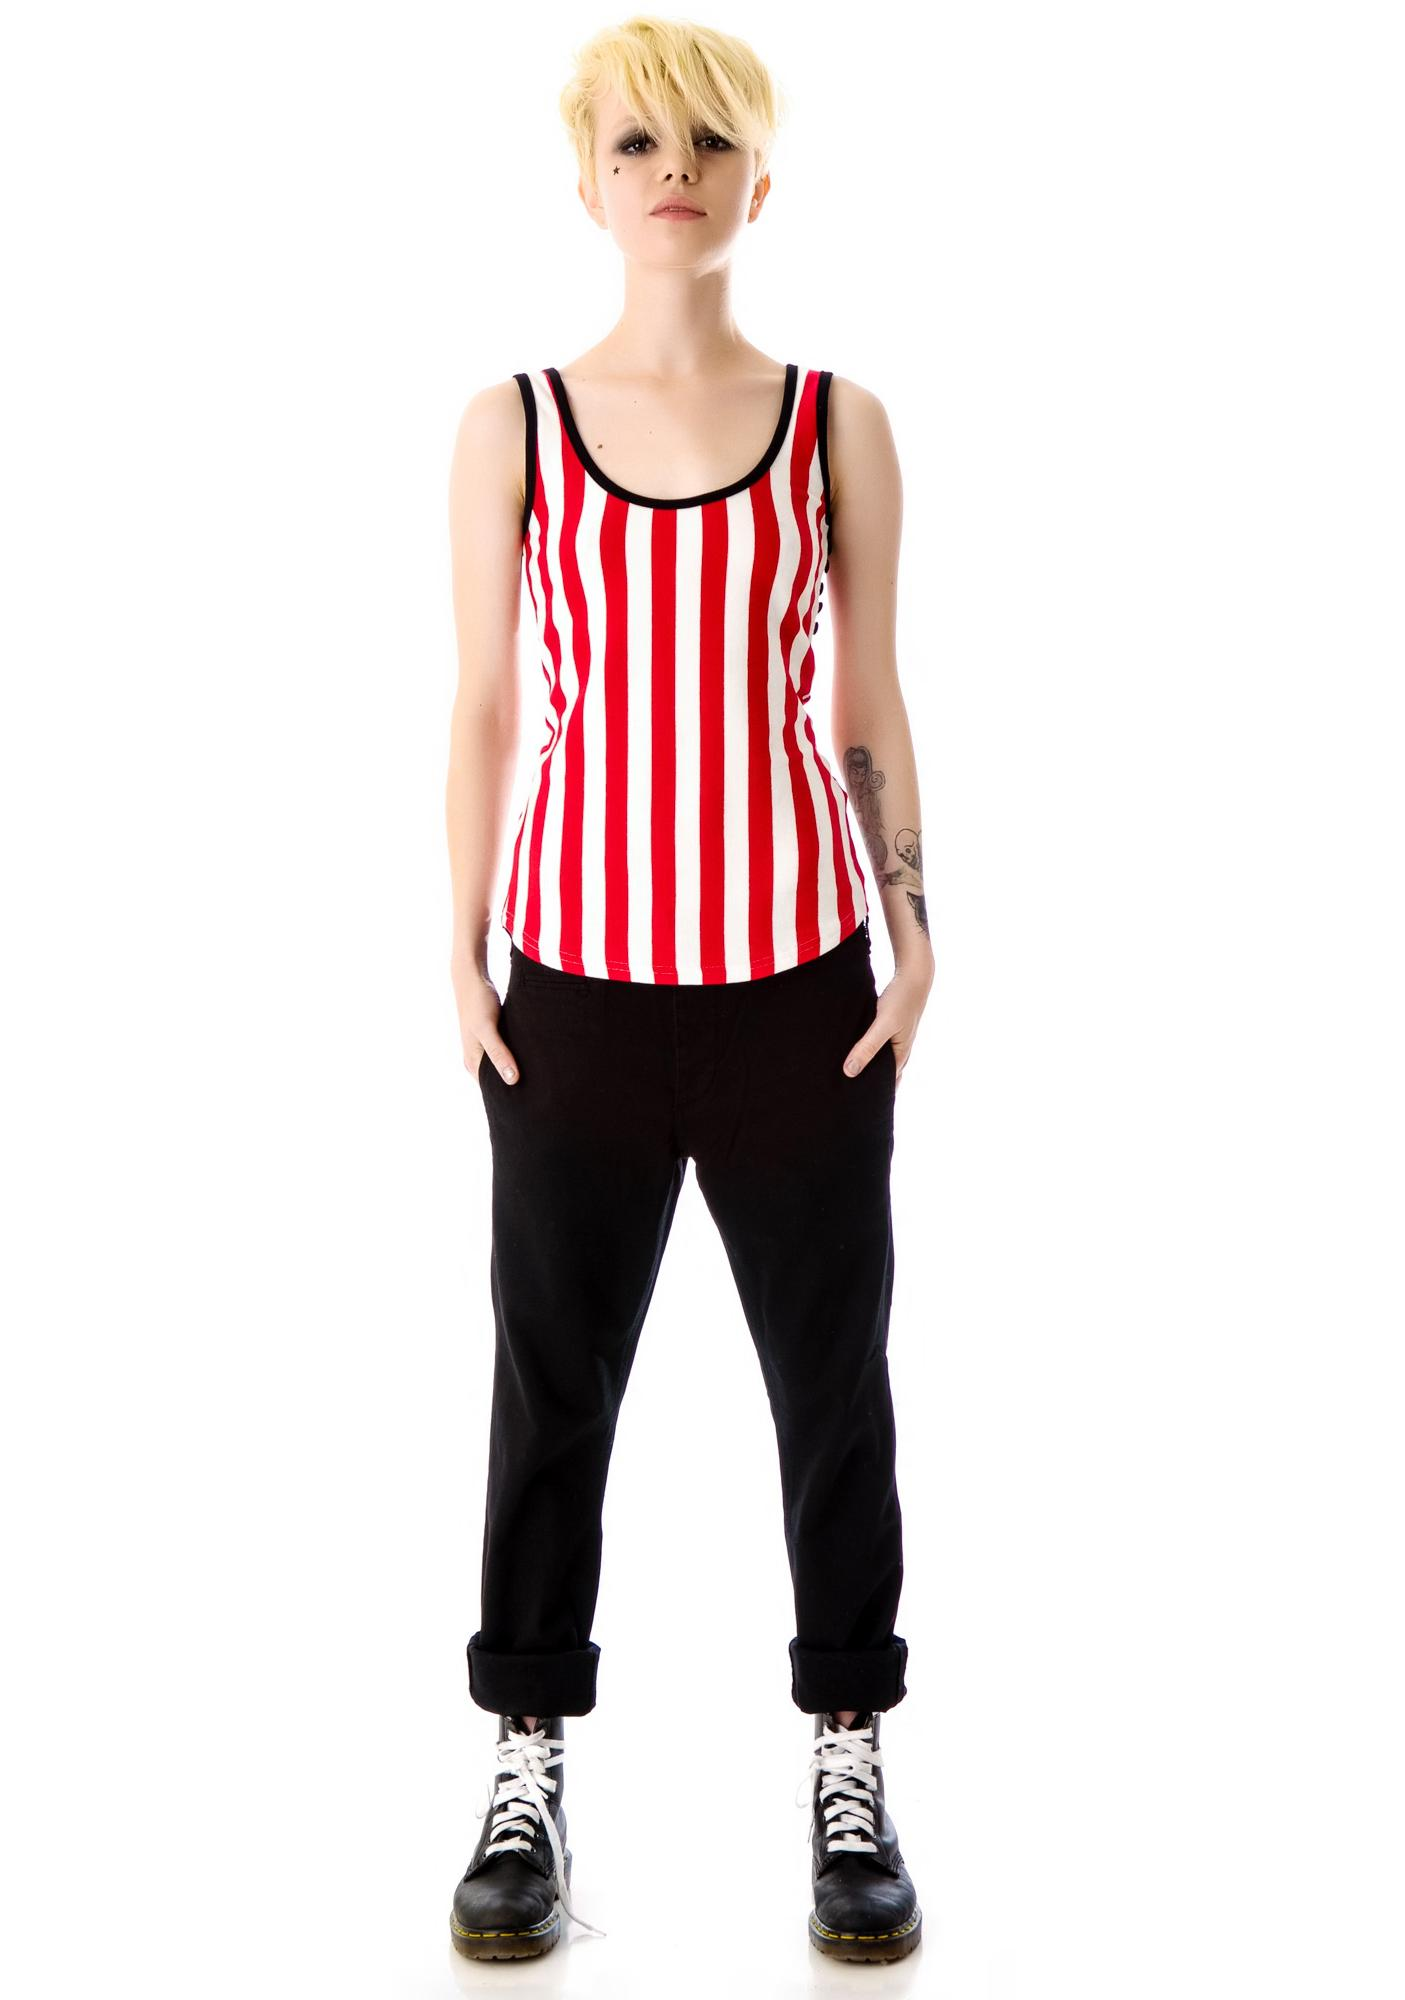 Sourpuss Clothing Misery Striped Tank Top